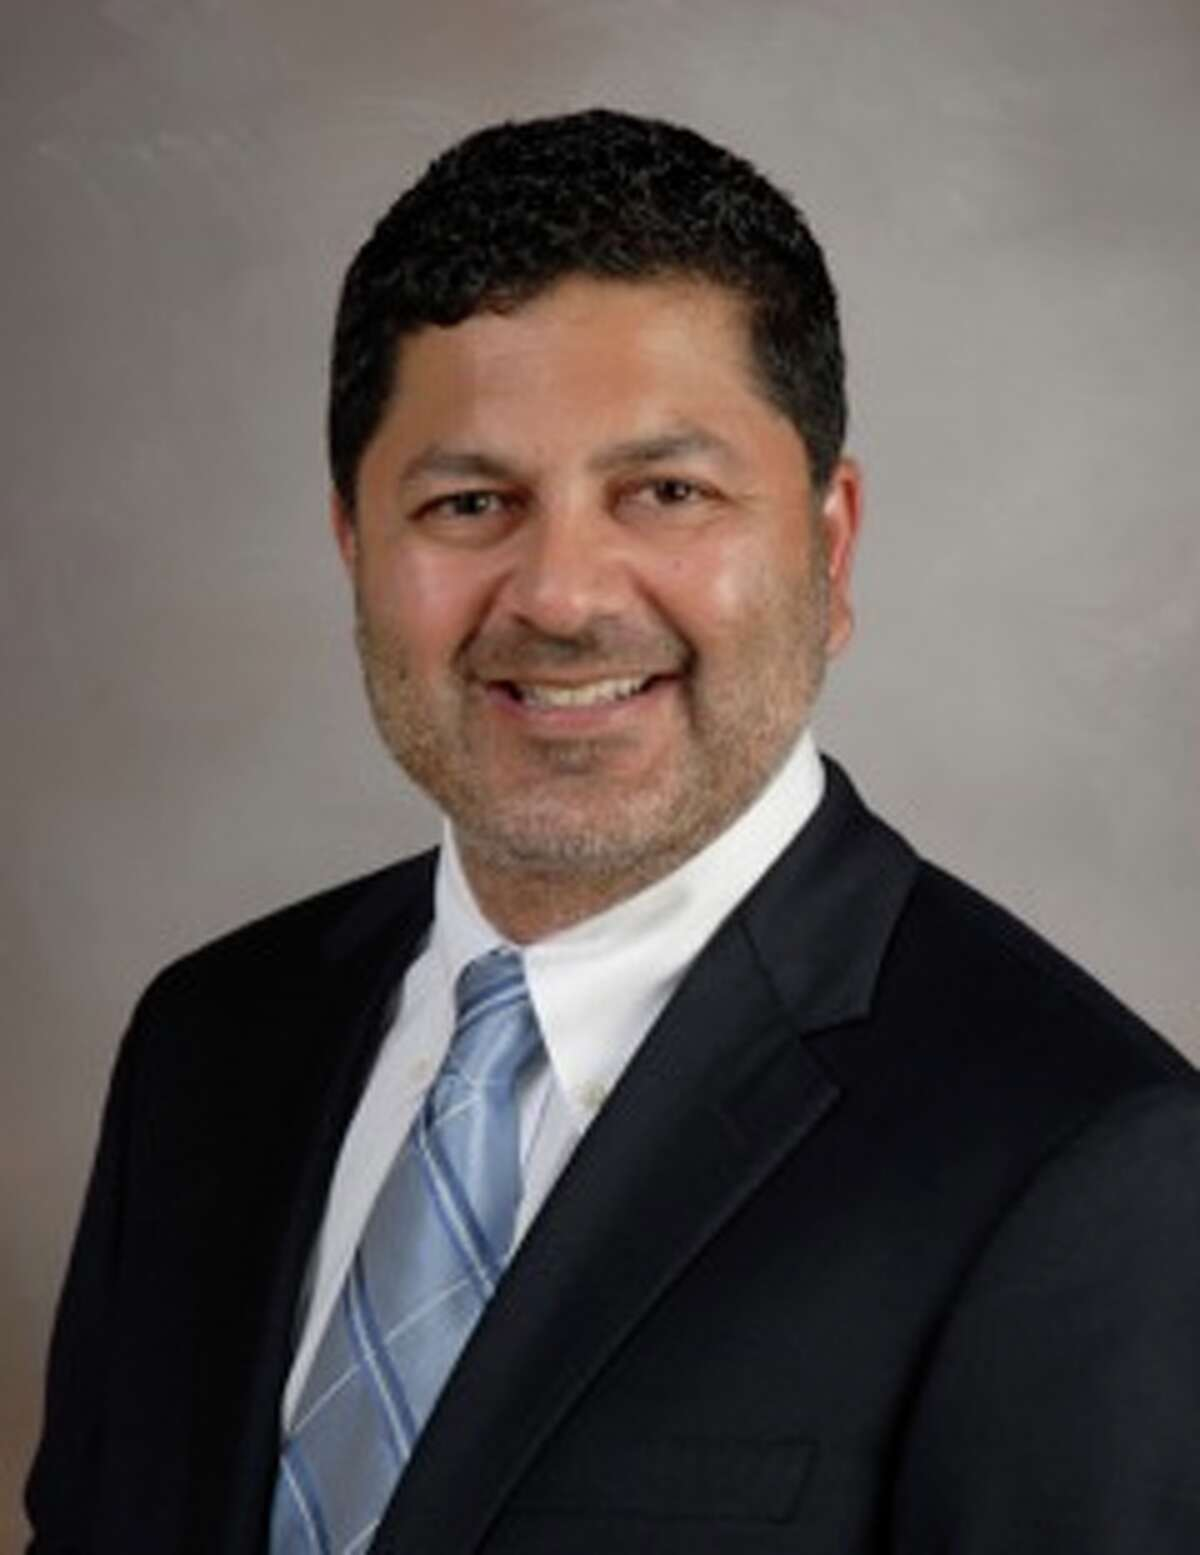 Orthopedic surgeon Vic Goradia has joined the Memorial Hermann Northeast support team for area middle and high school sports.